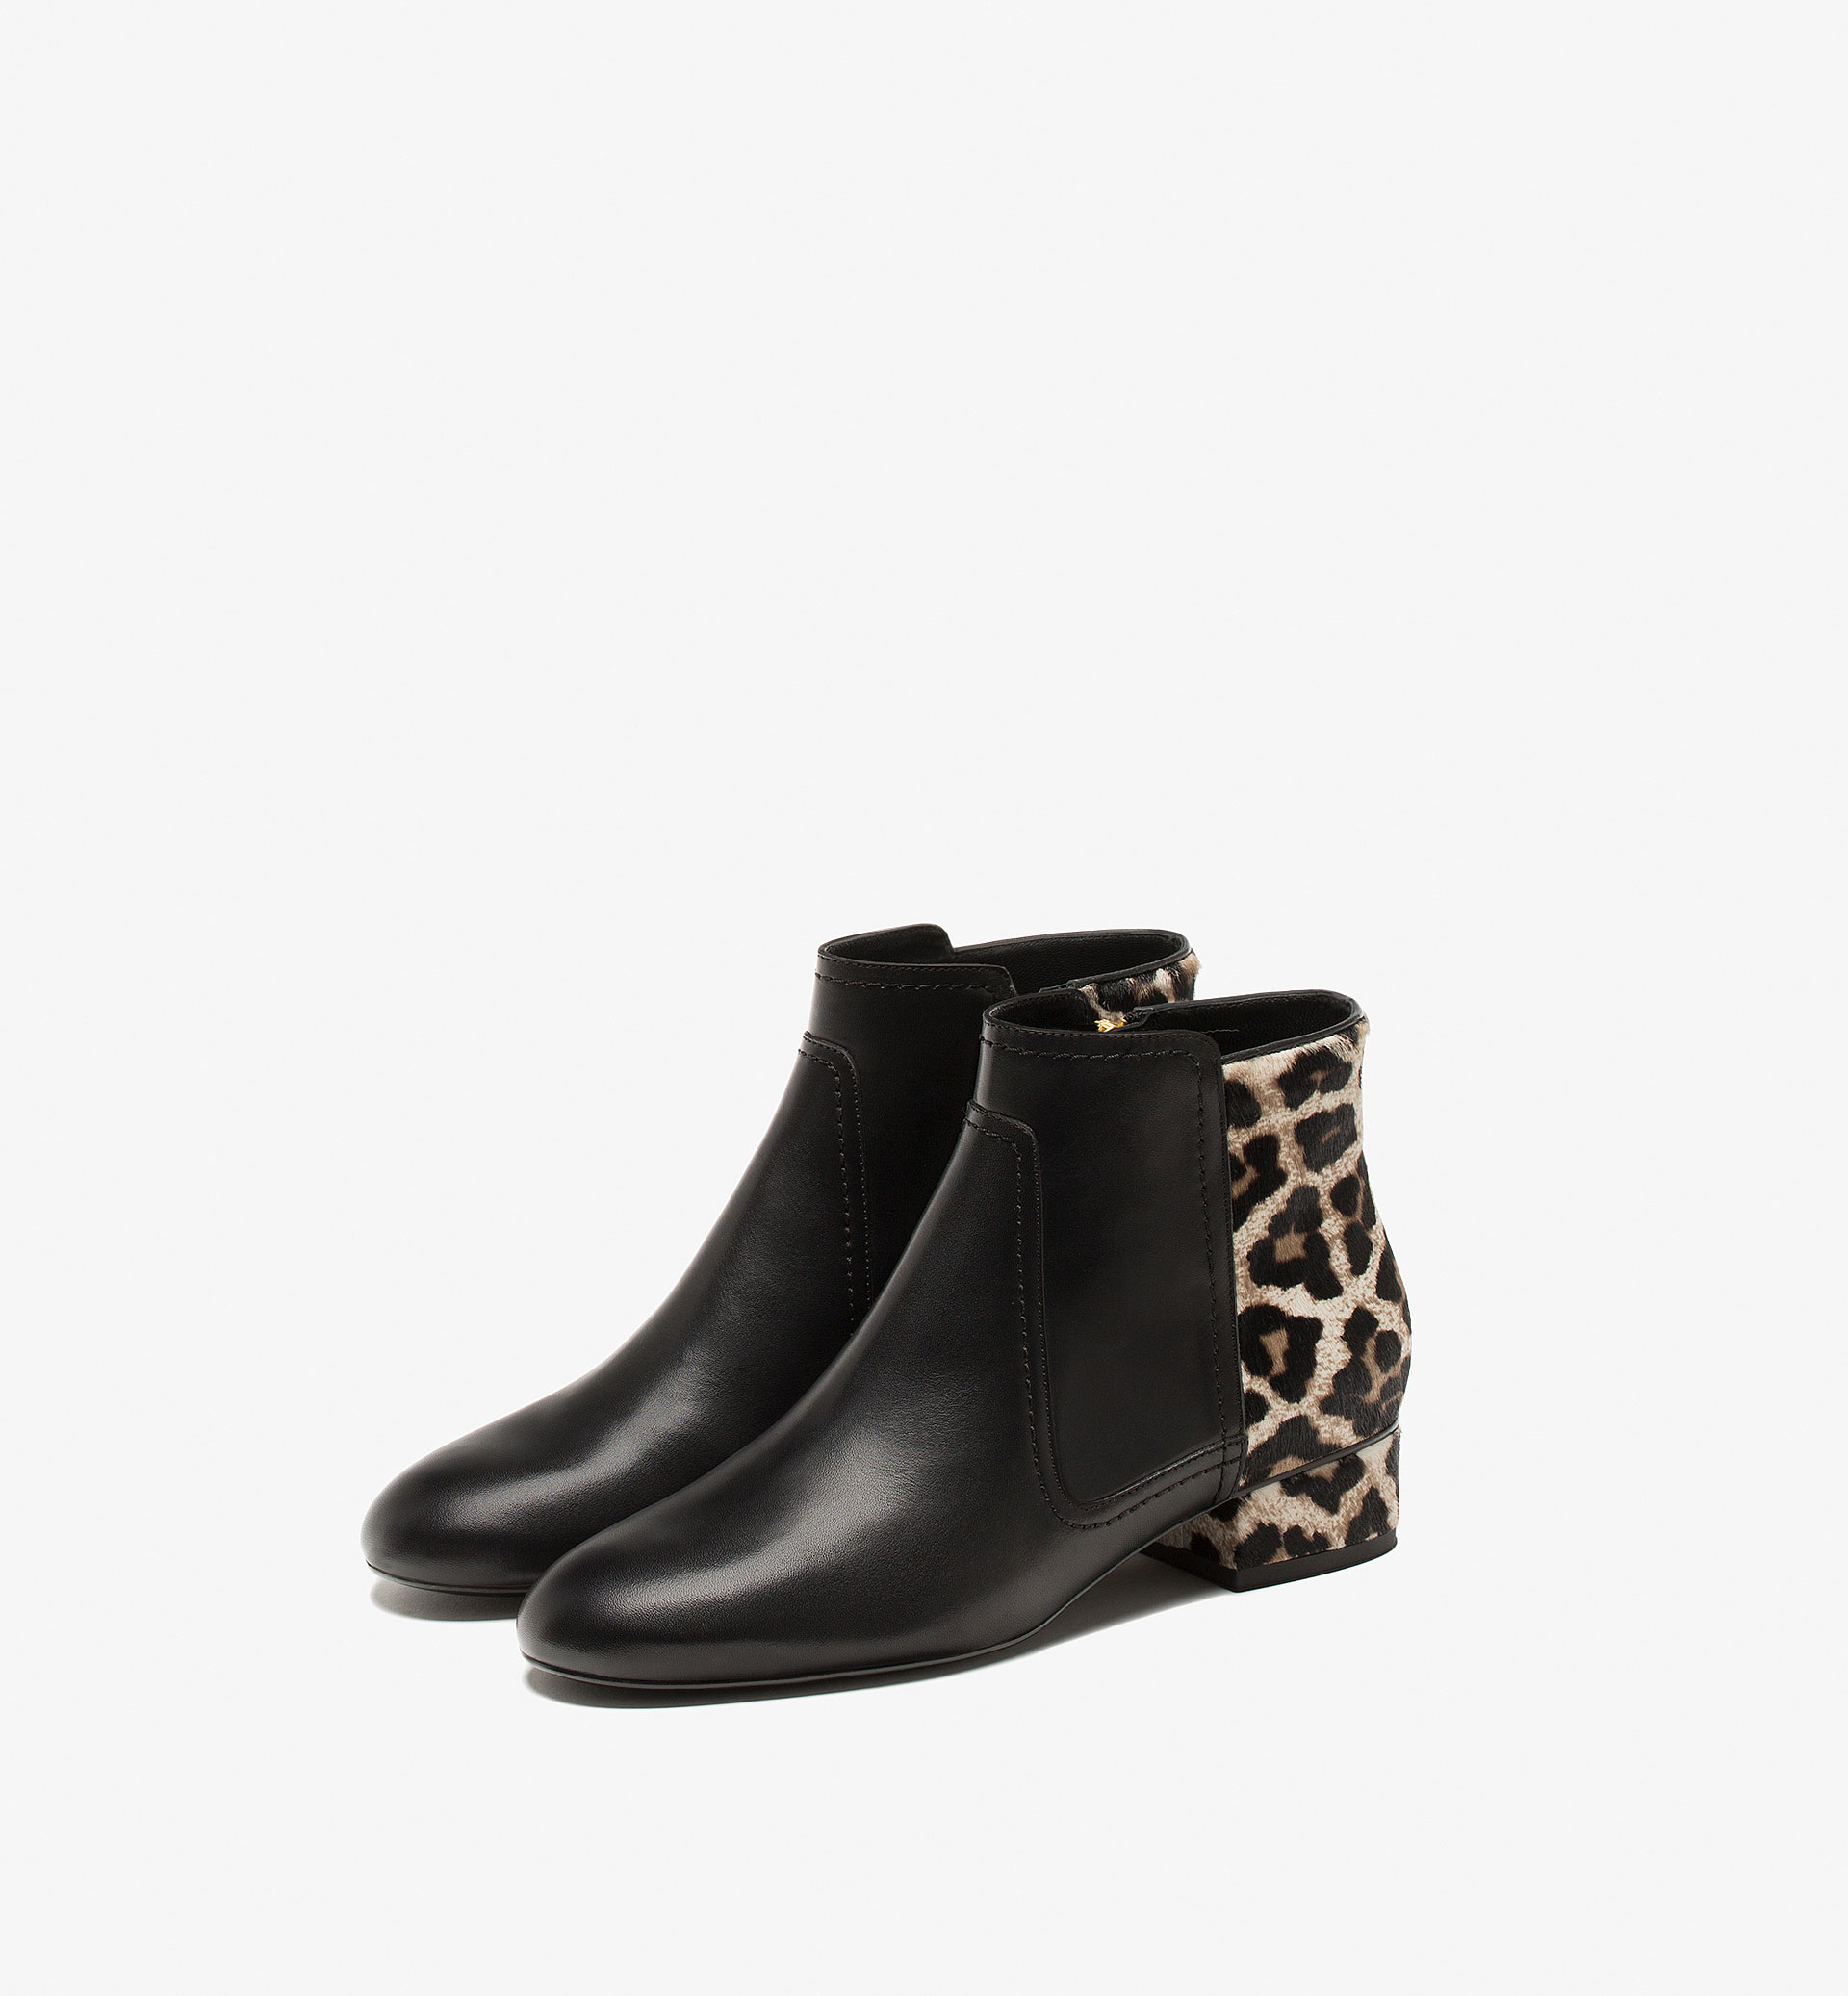 ANIMAL PRINT FLAT ANKLE BOOTS